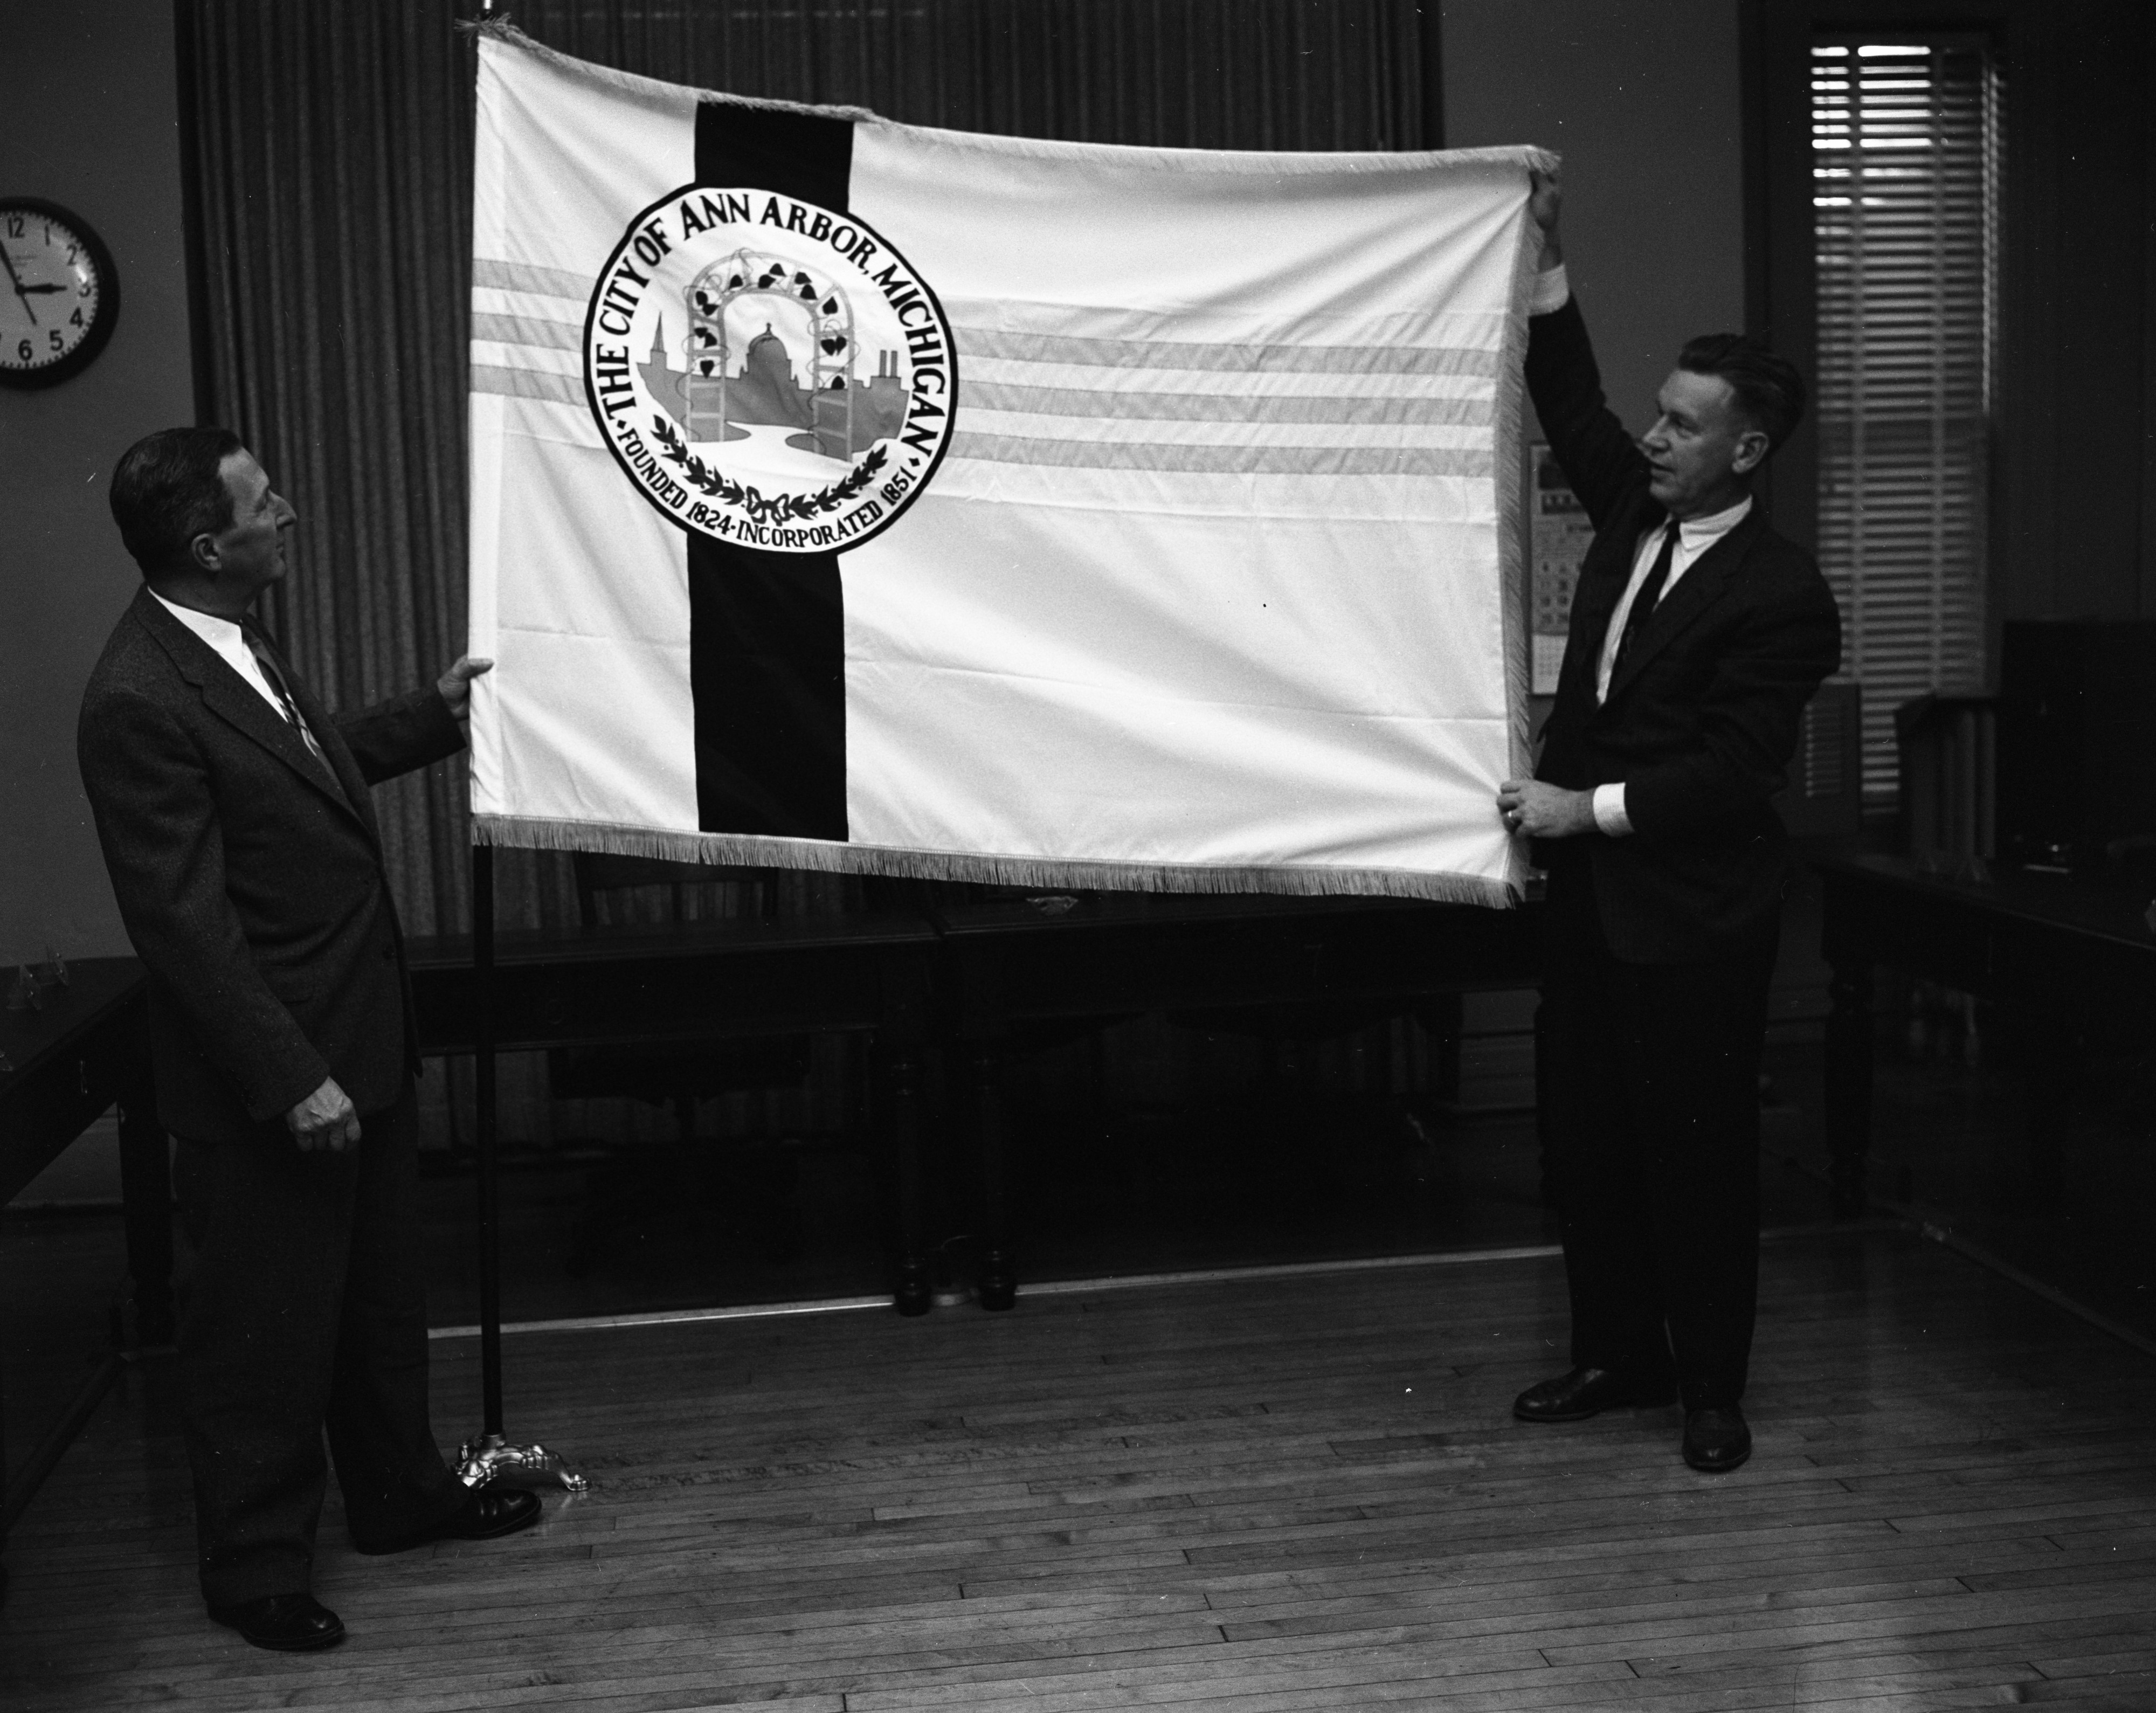 City Clerk Fred J. Looker (left) and City Administrator Guy C. Larcom Jr. examine the new city flag at City Hall, October 1959 image